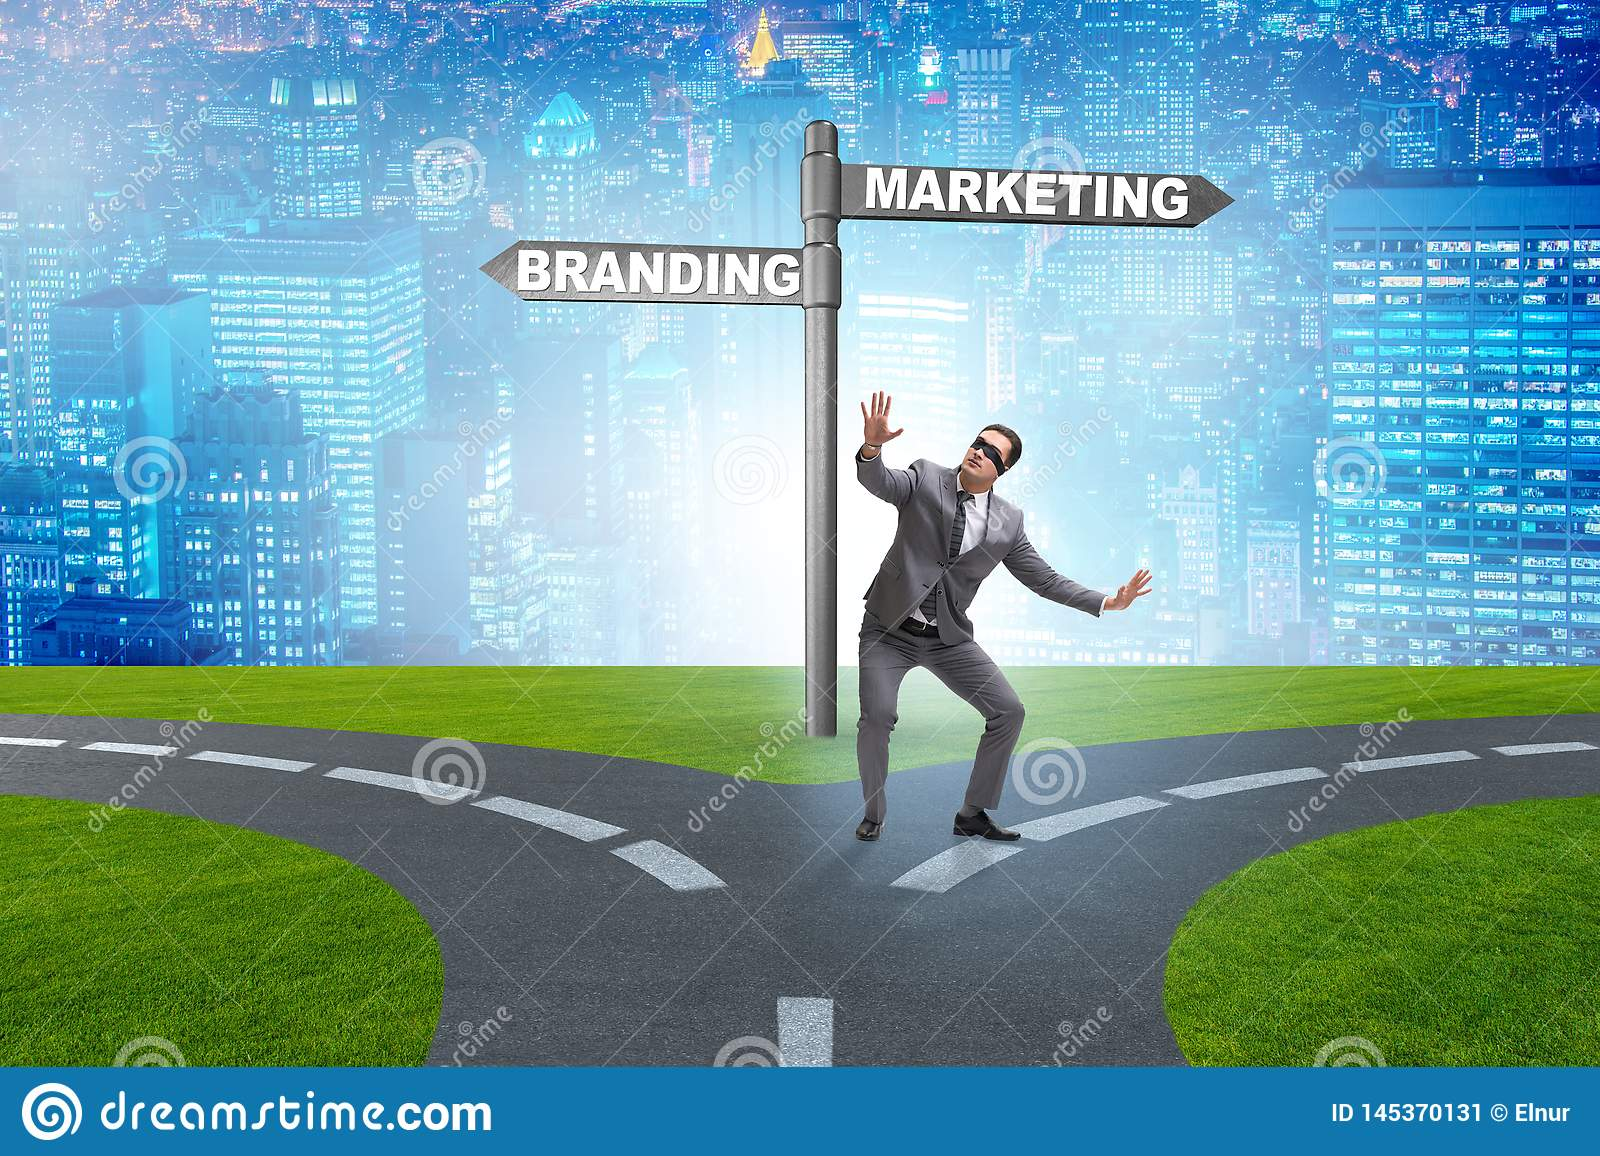 The branding and marketing concept with businessman